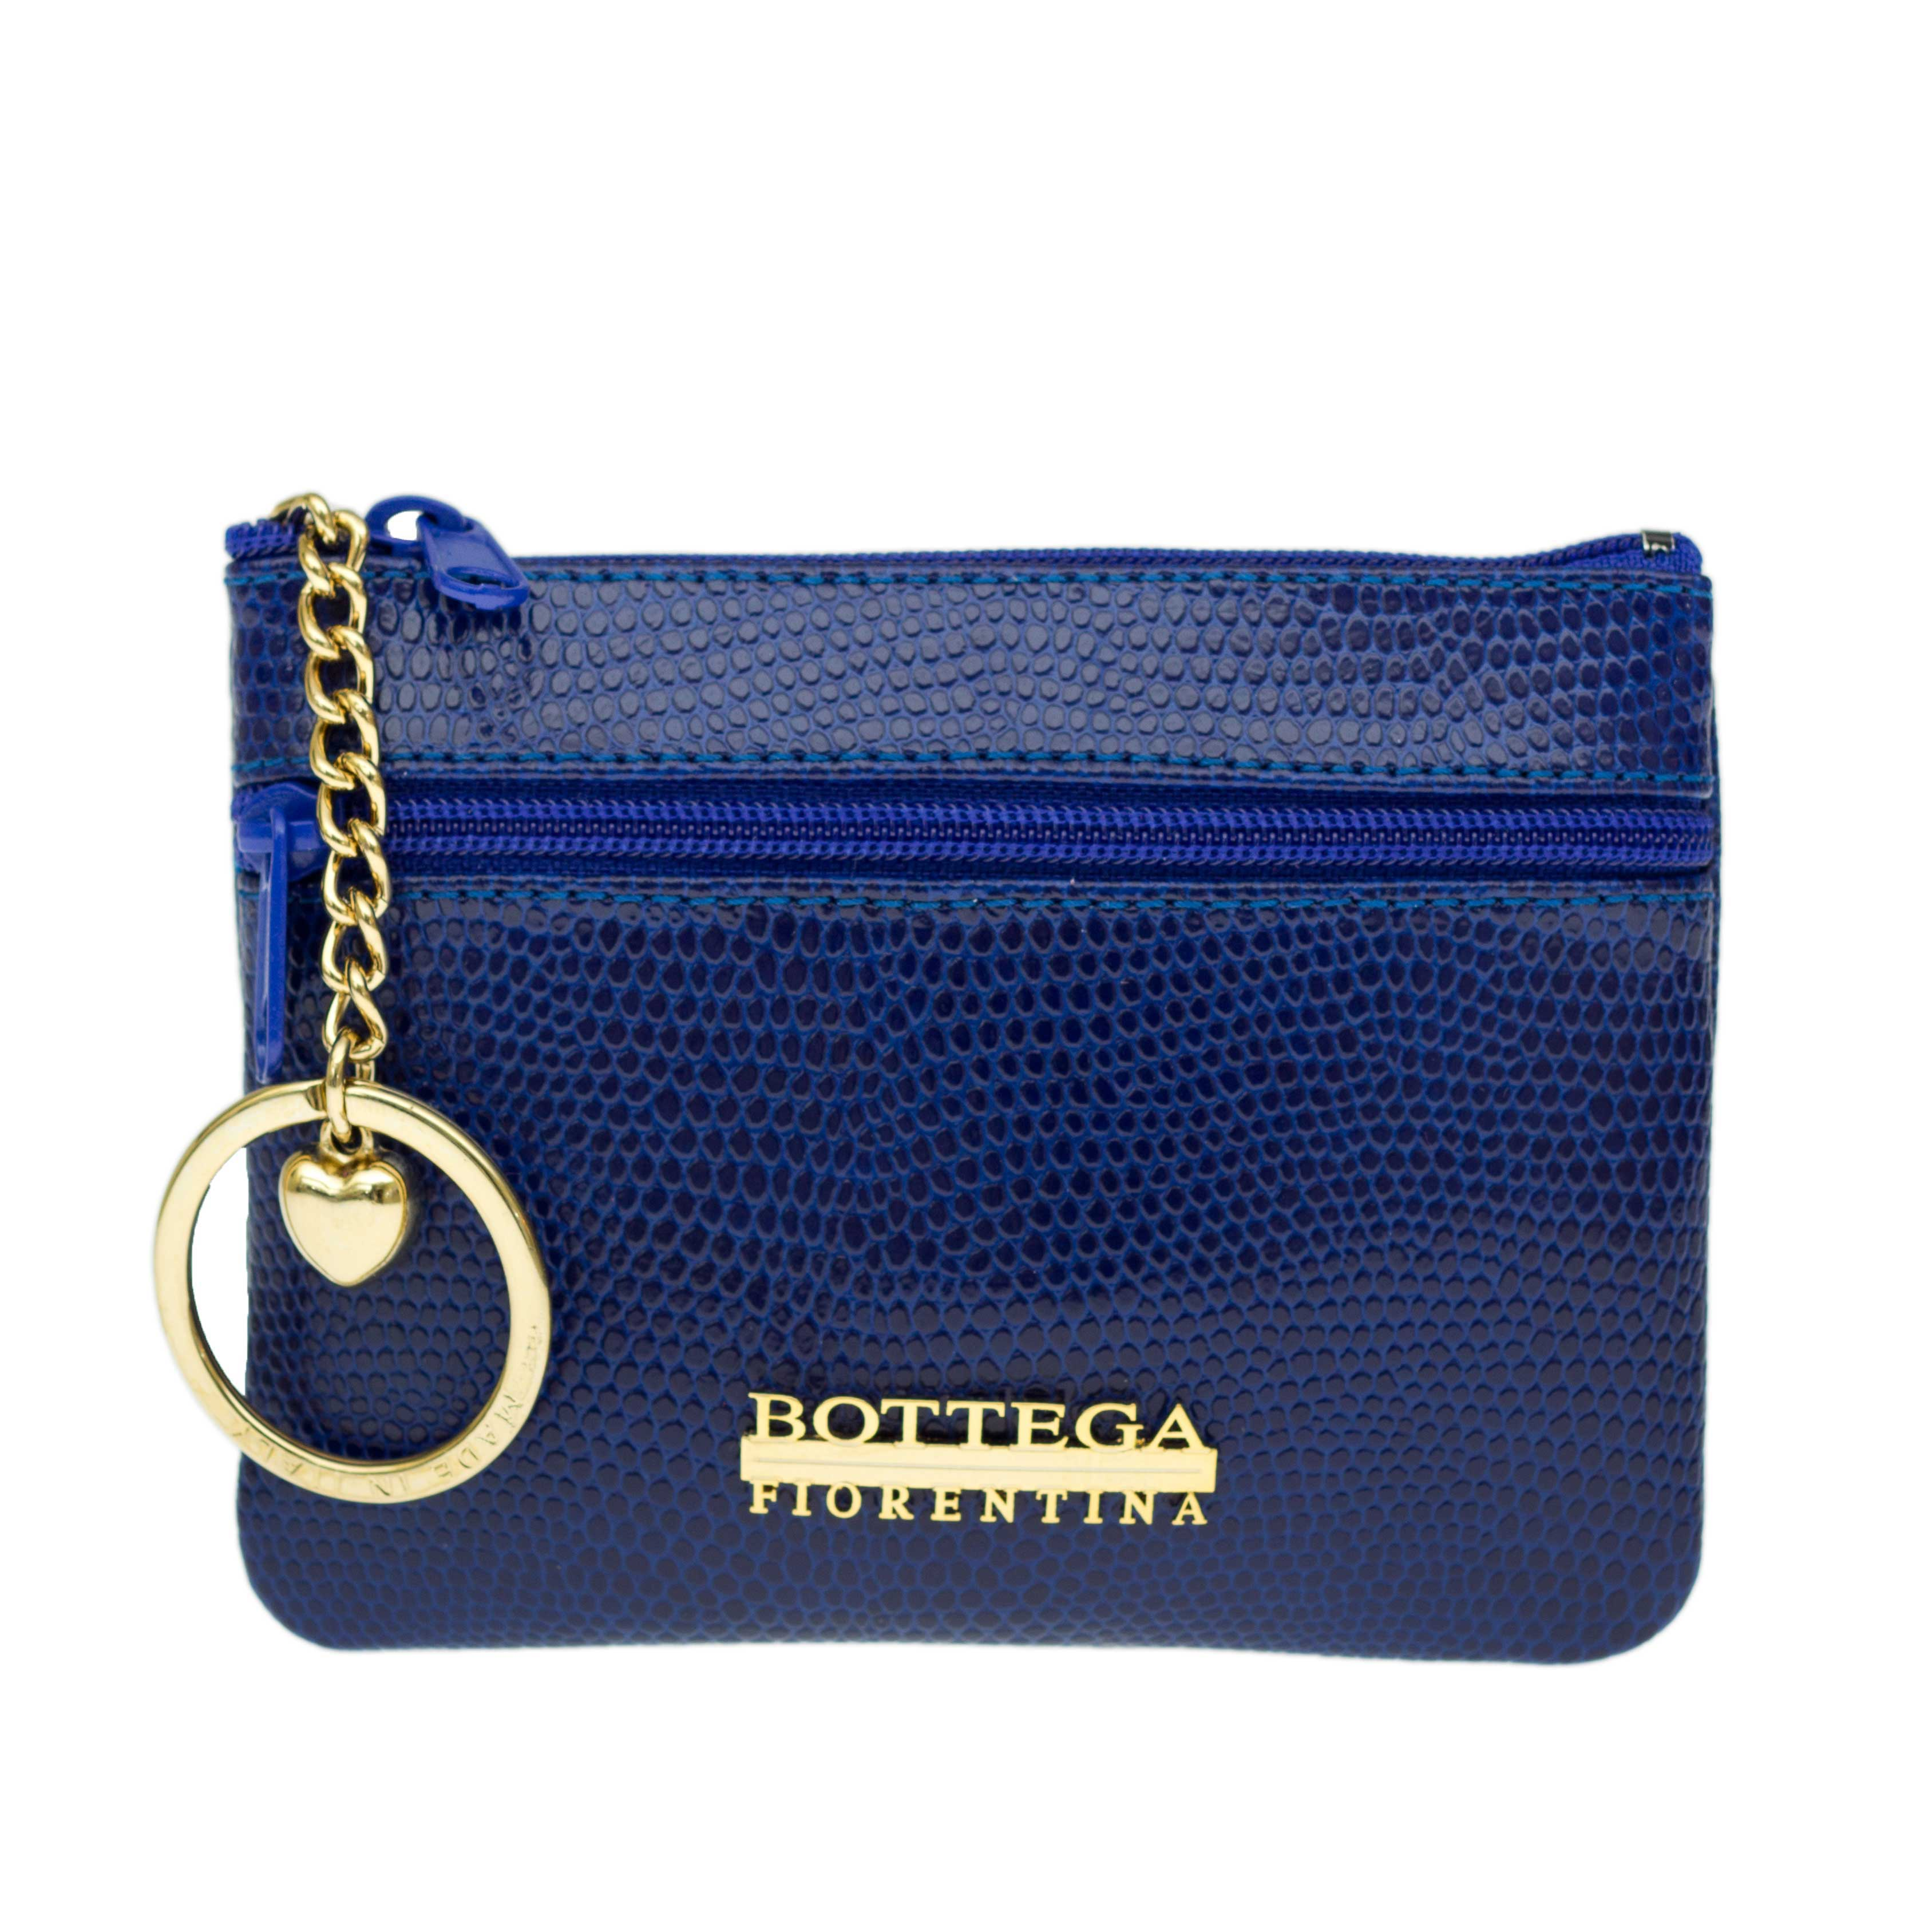 Bottega Fiorentina Italian Made Blue Lizard Print Leather Small Womens Key Case